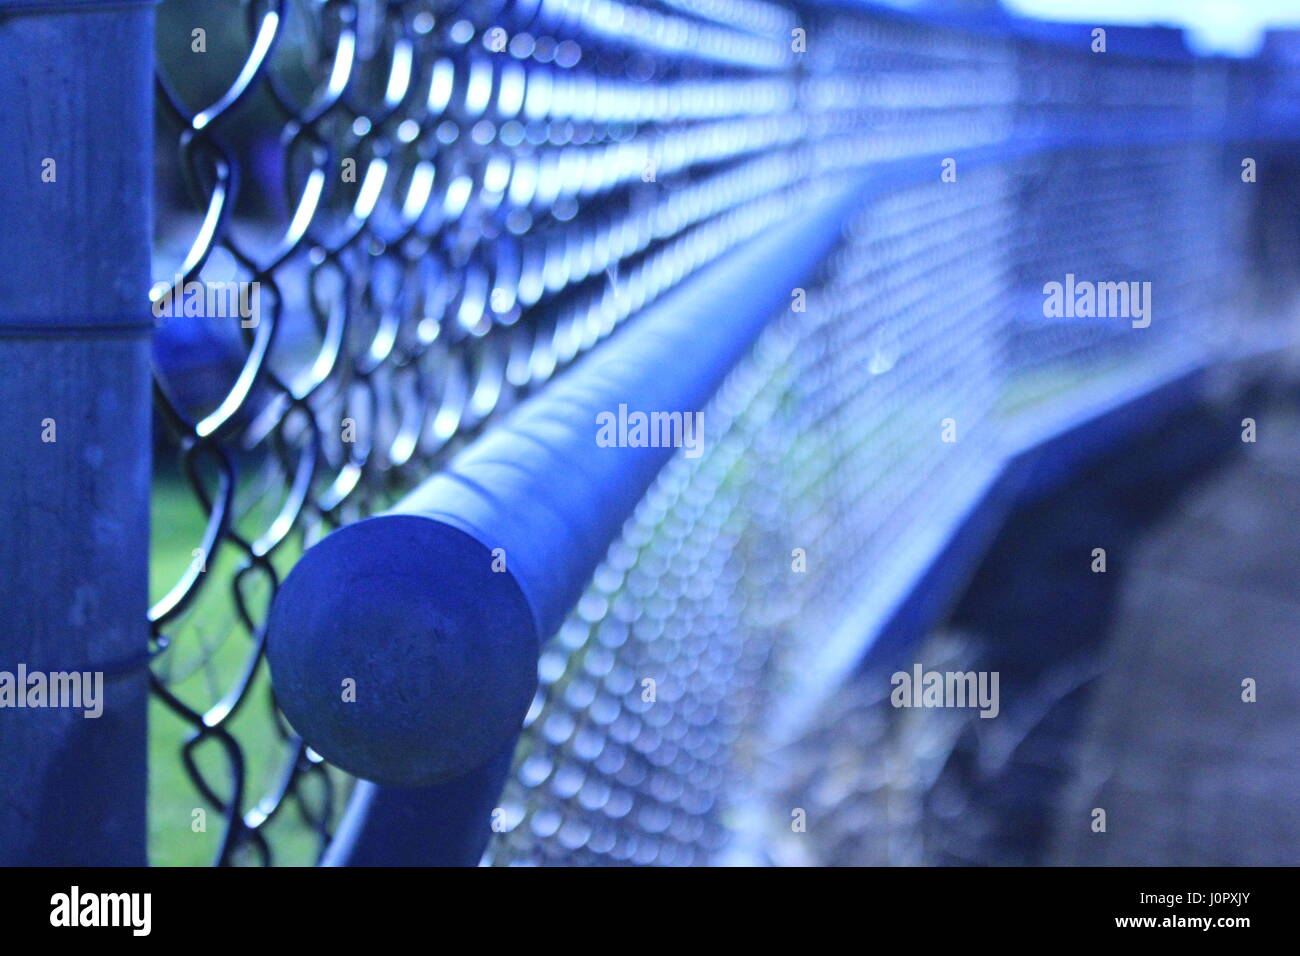 Macro photo of hand rail with soft focus diamond wire fence - Stock Image